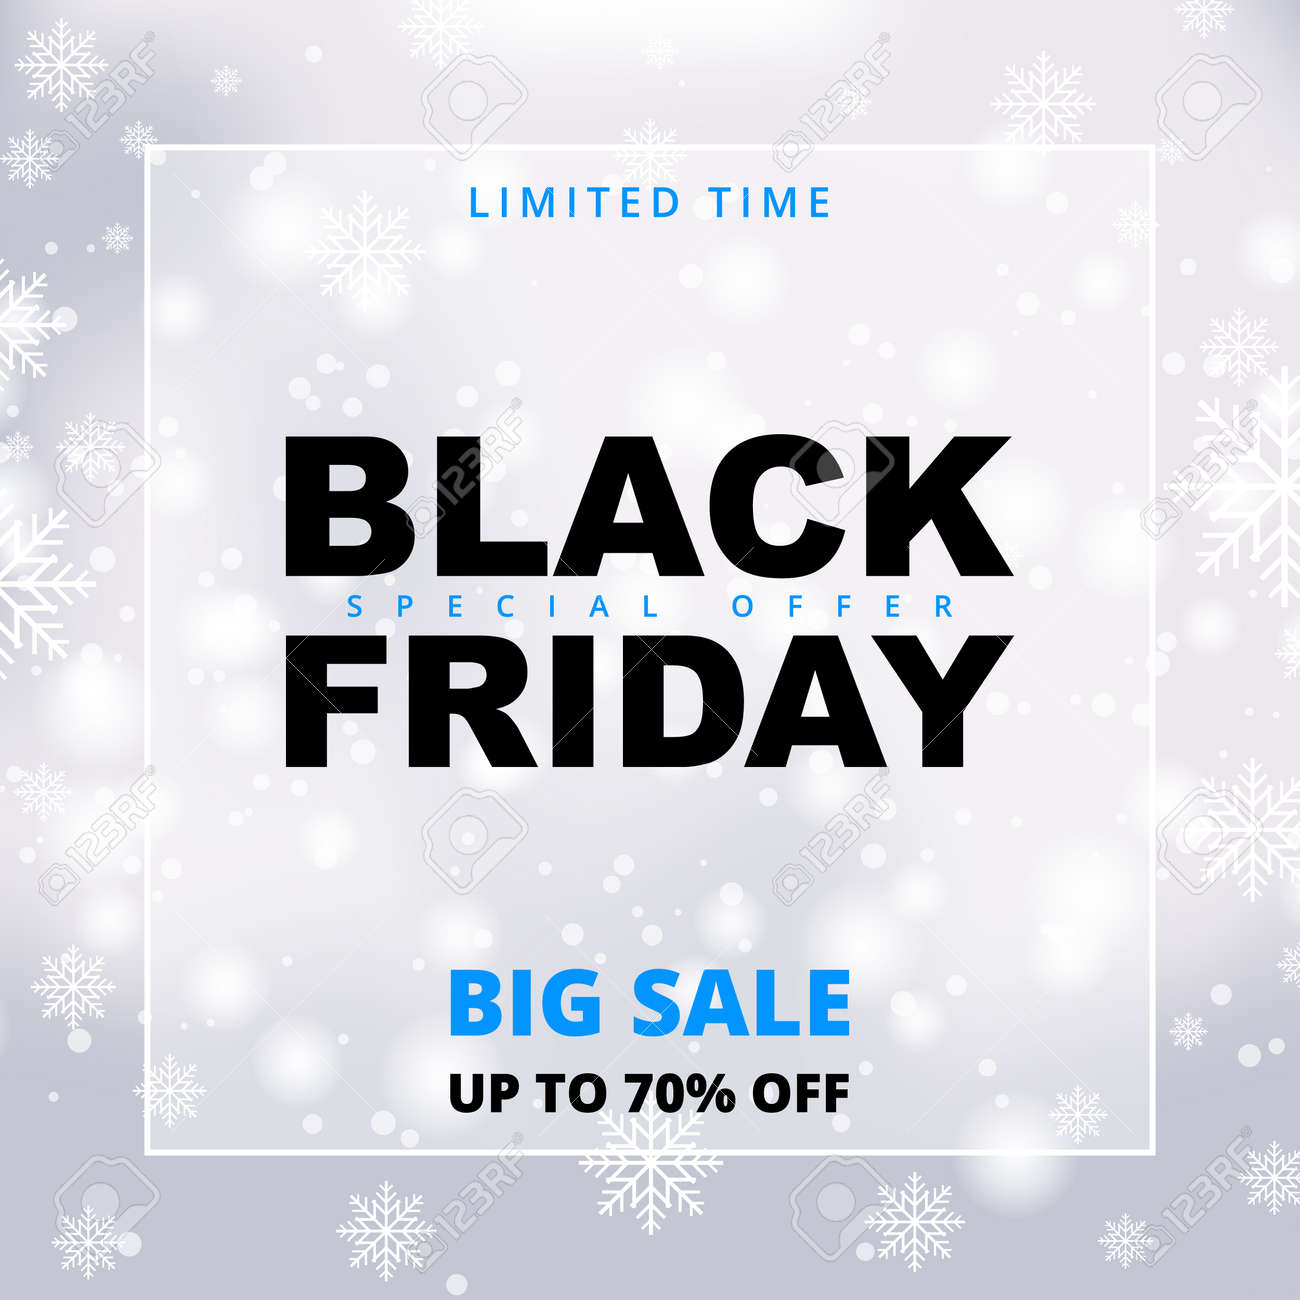 Black friday snowy sale promotion banner. Black friday winter white sale banner template. - 156717556